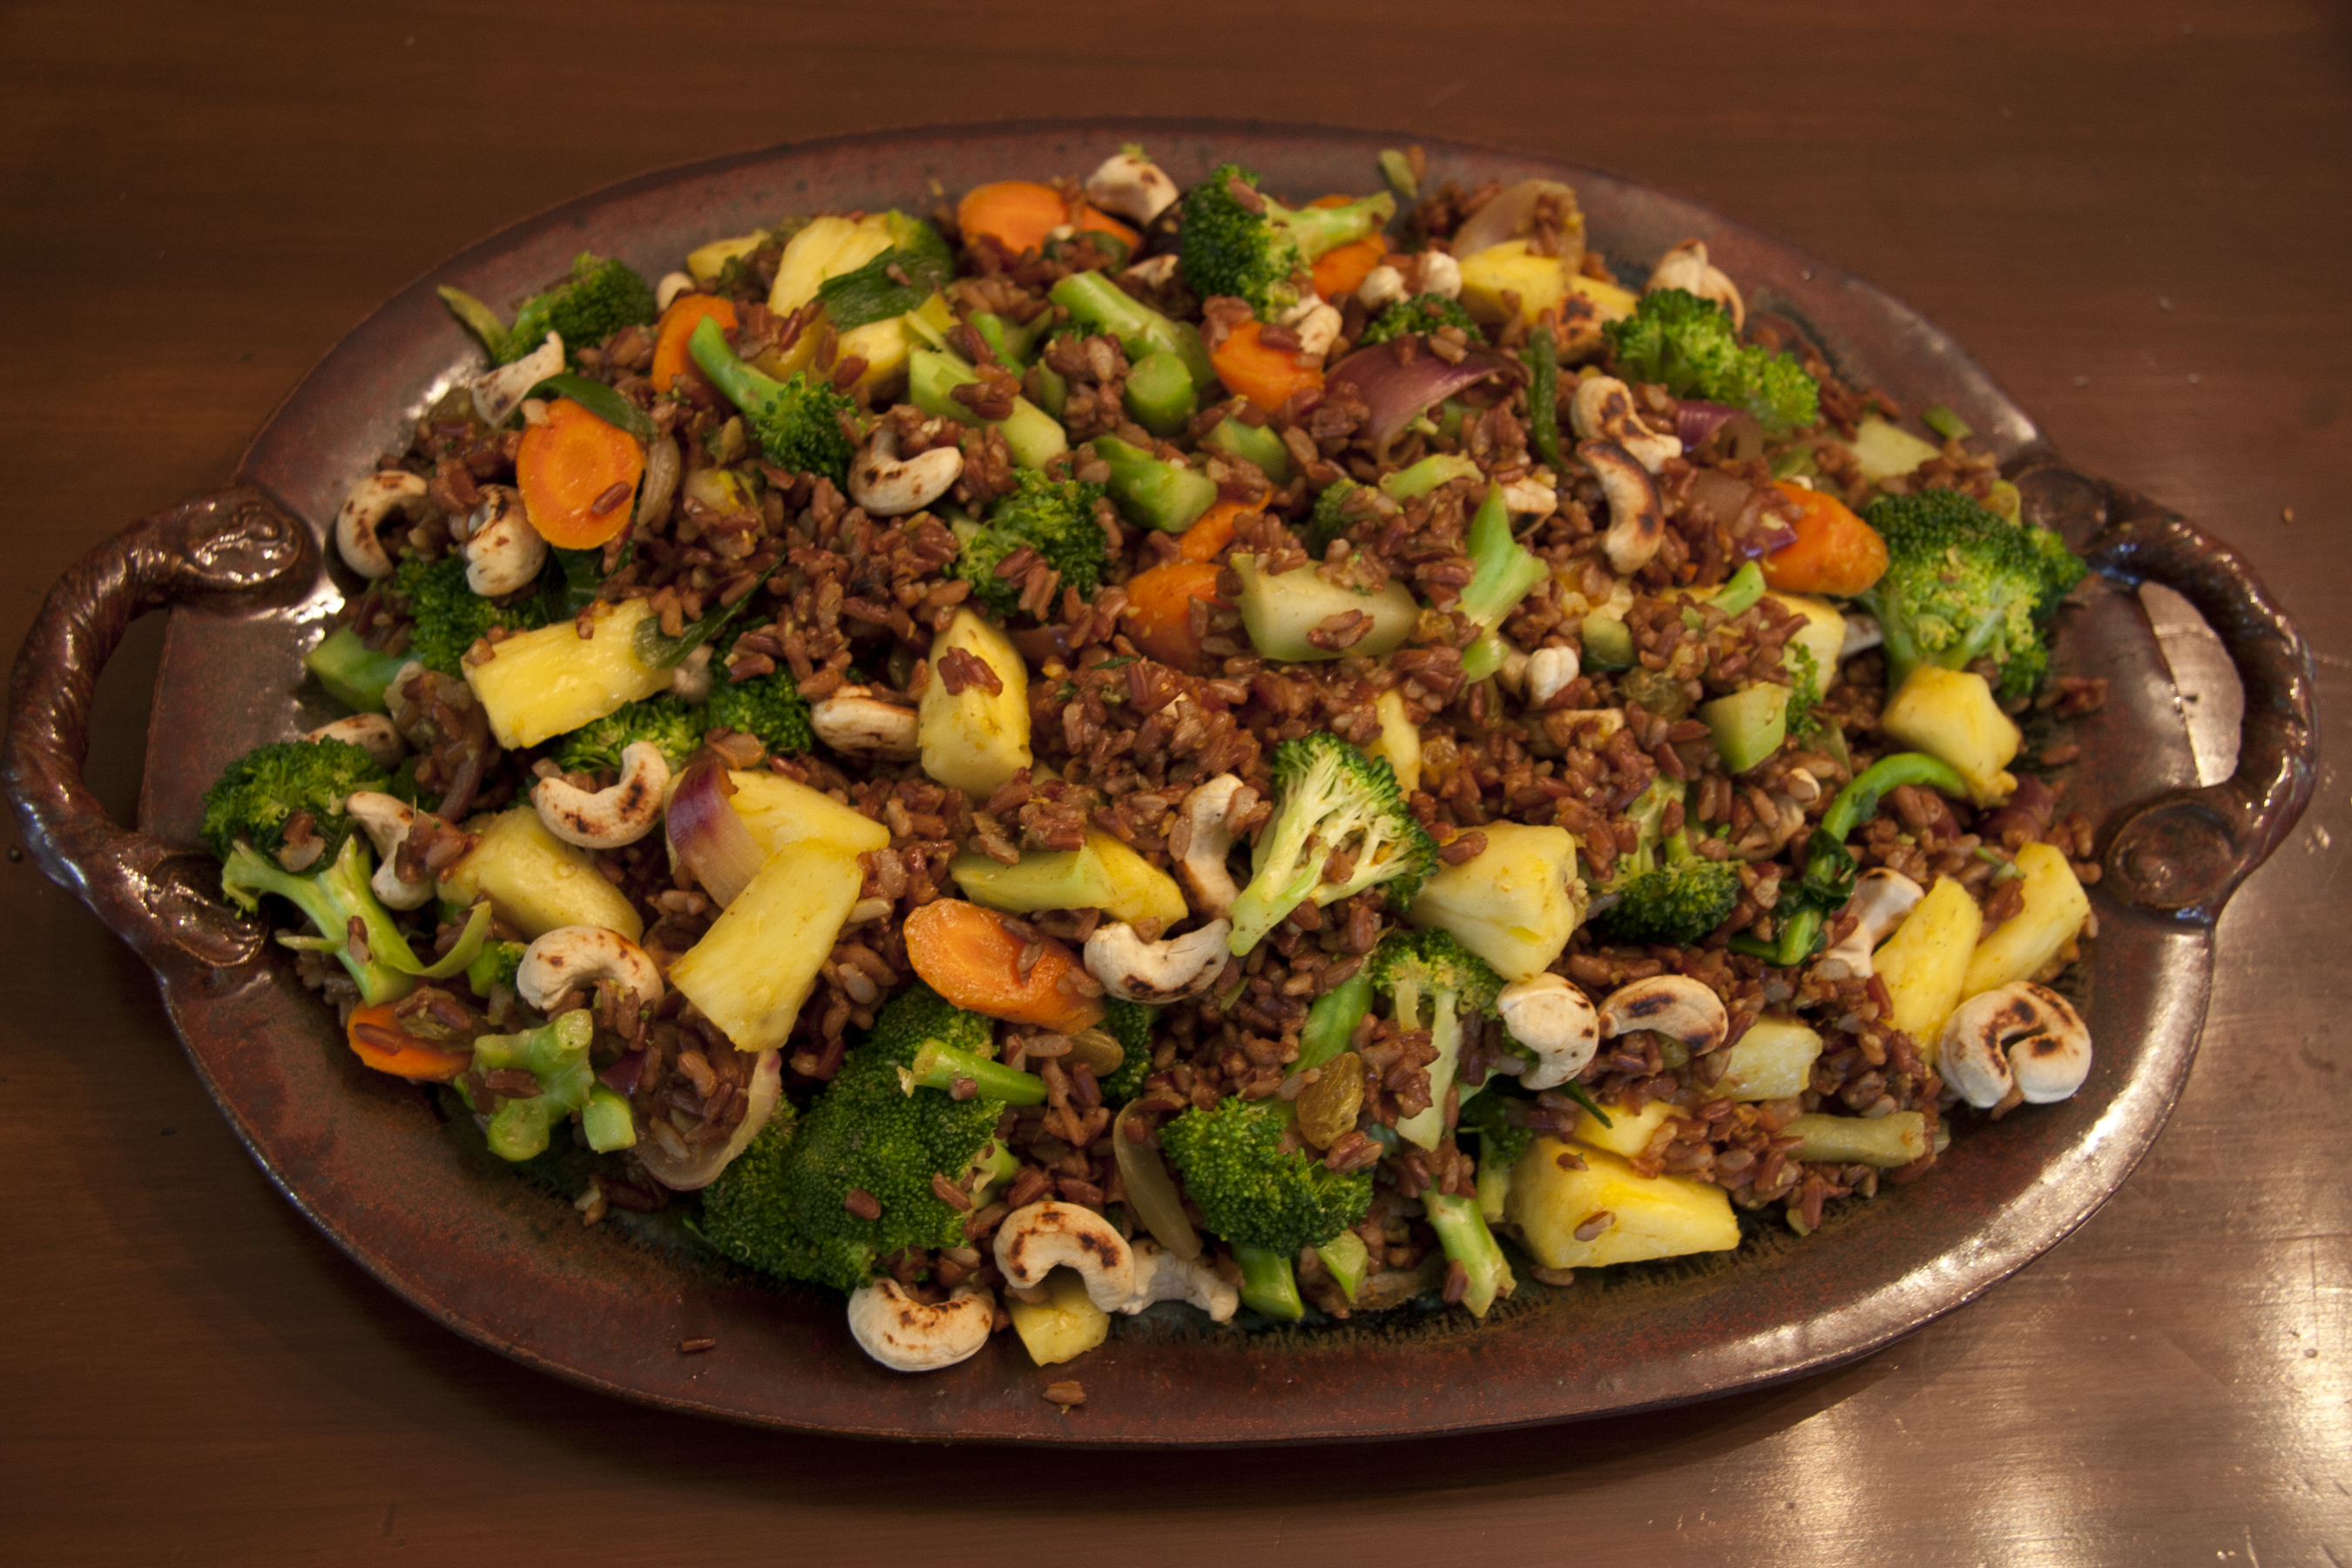 Pineapple Stir-fry with Red Rice